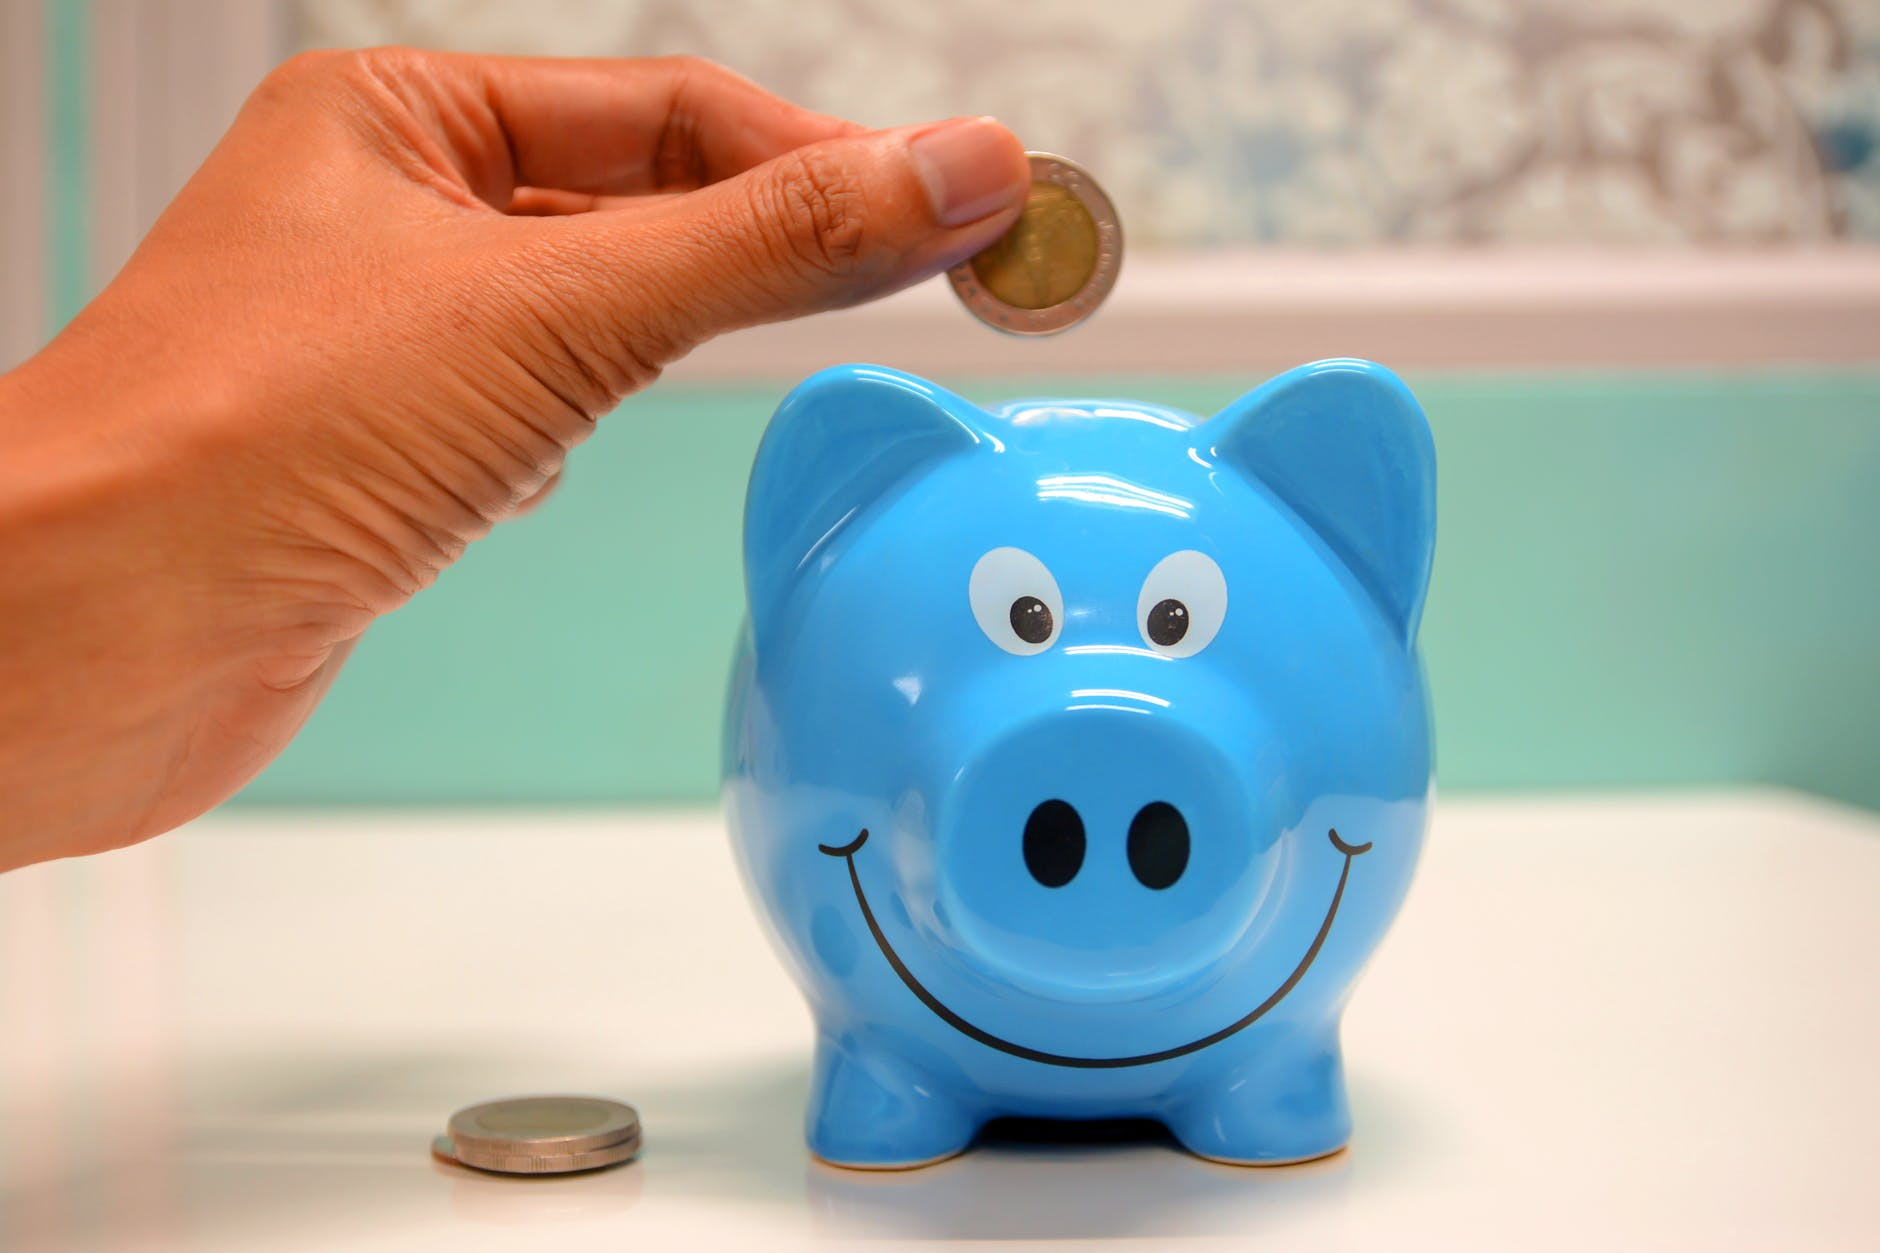 photo of a hand placing a coin in a smiling blue piggy bank